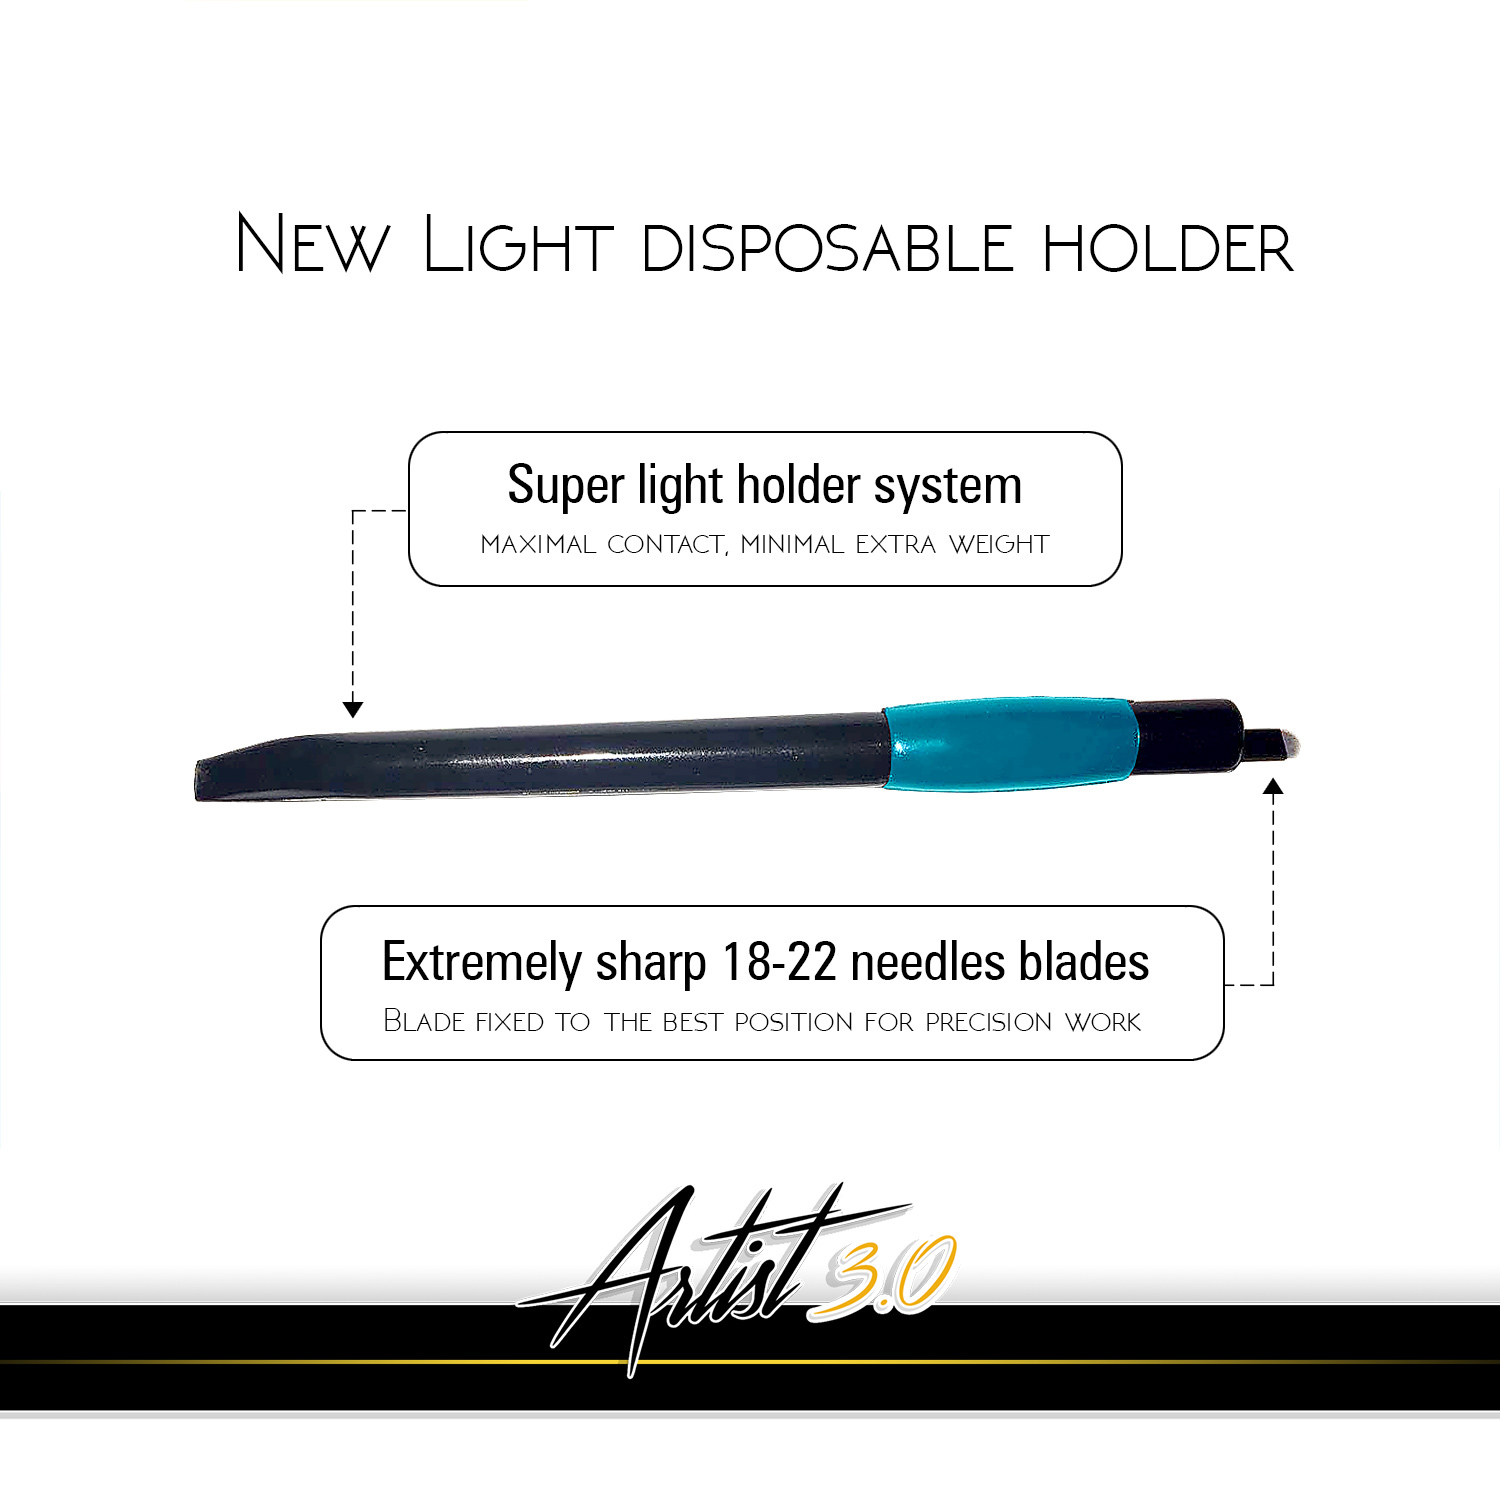 New disposable holder is much lighter than traditional ones. It allows to use totally different technique when making the strokes. The super-sharp new u-blade is fixed into the holder in the right depth and angle. This is what makes perfect light-microblading possible.